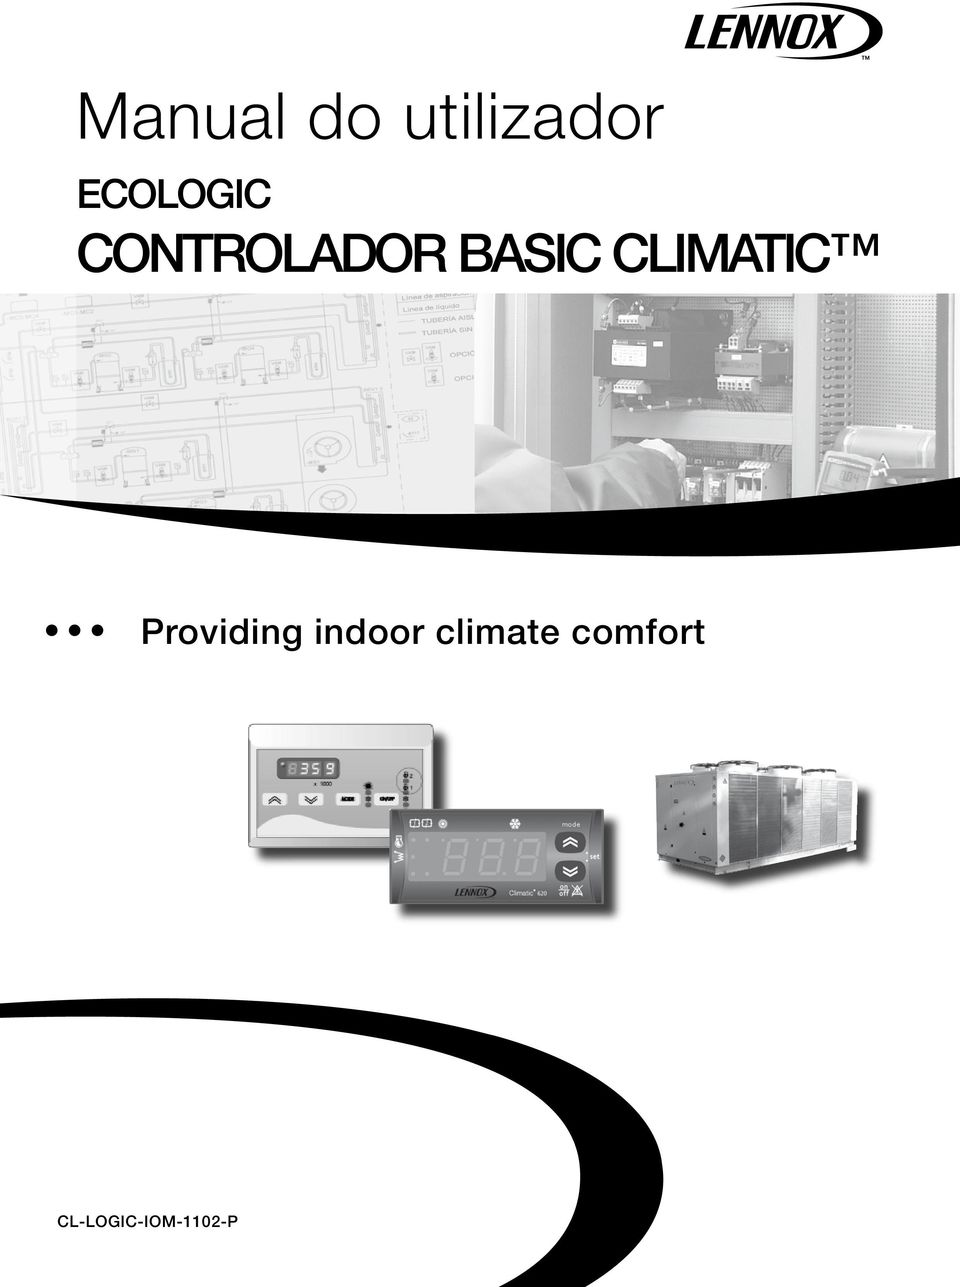 CLIMATIC Providing indoor